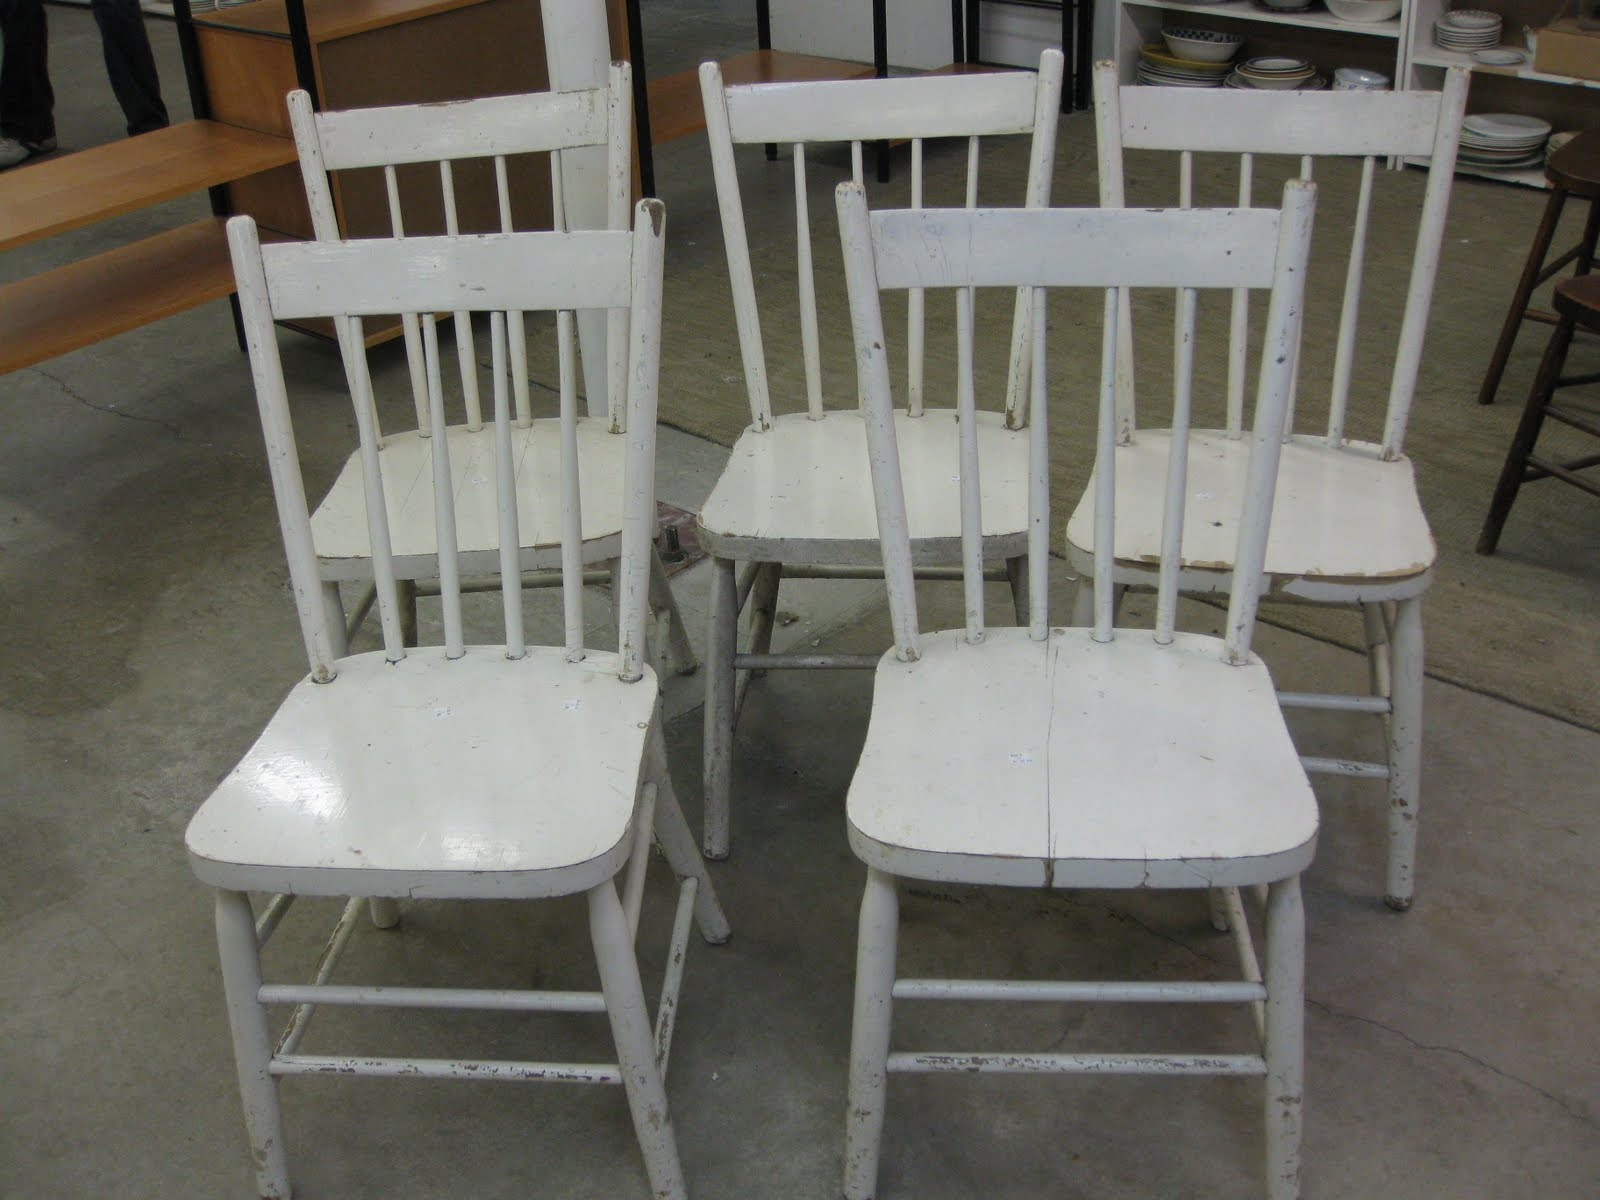 RAZMATAZ A Family of White Farmhouse Dining Chairs